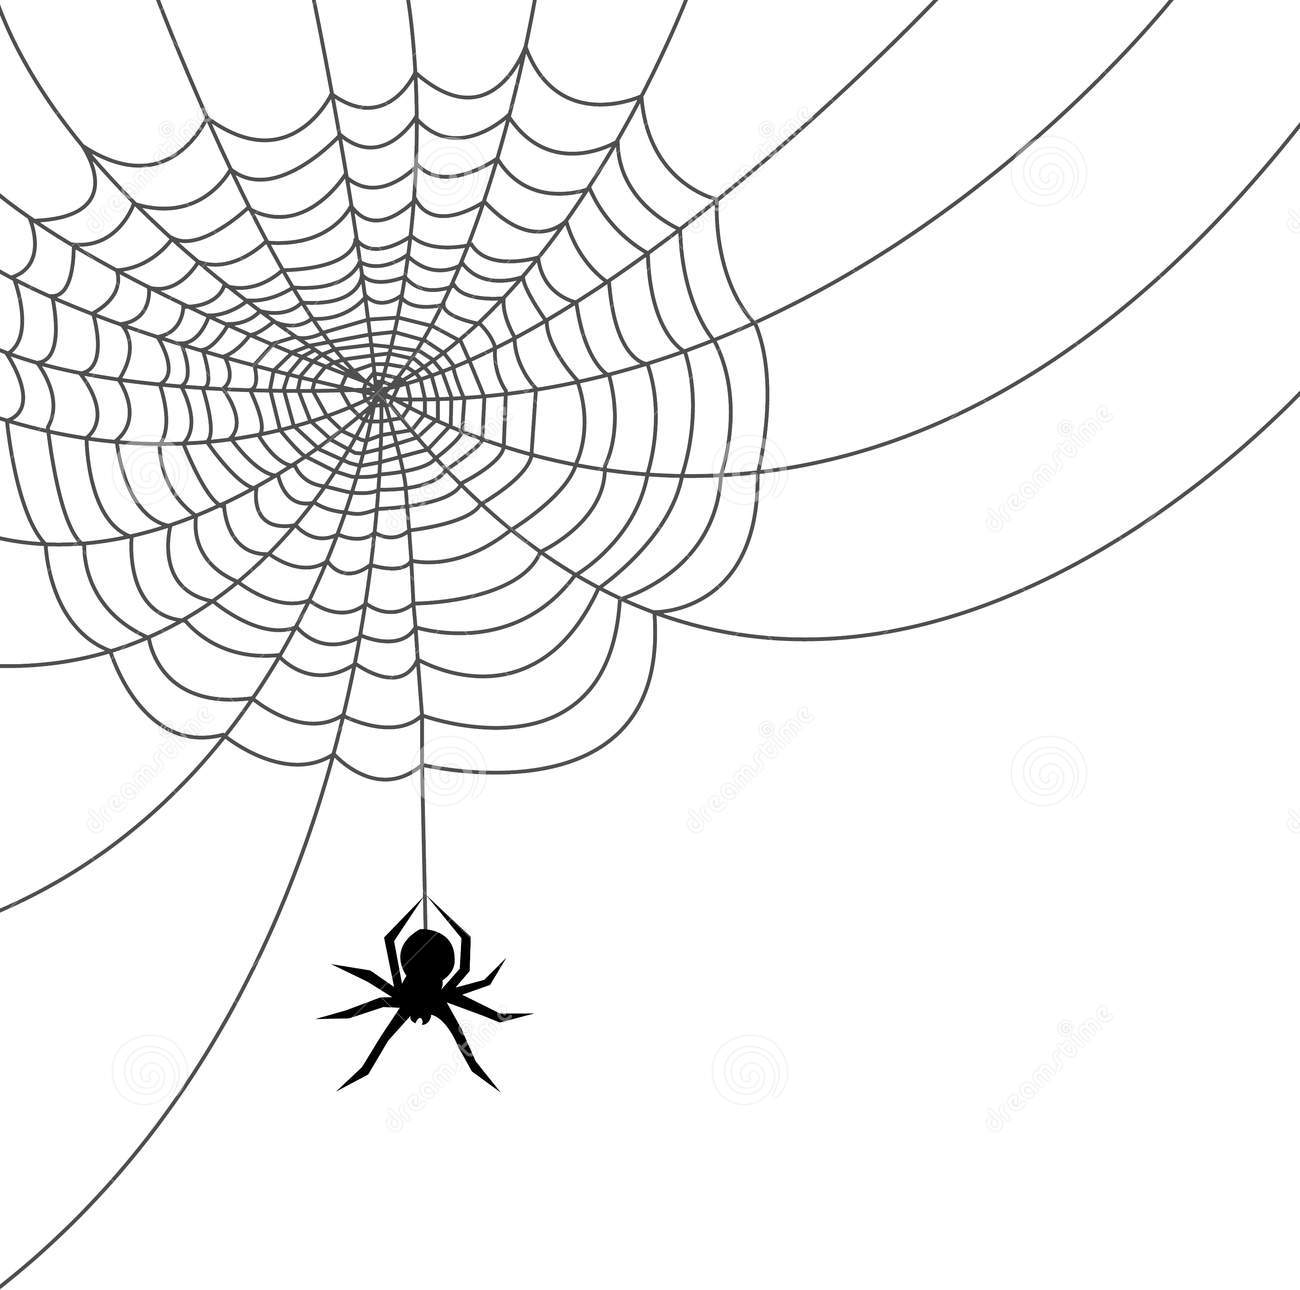 Spider web border clipart free images 6 2